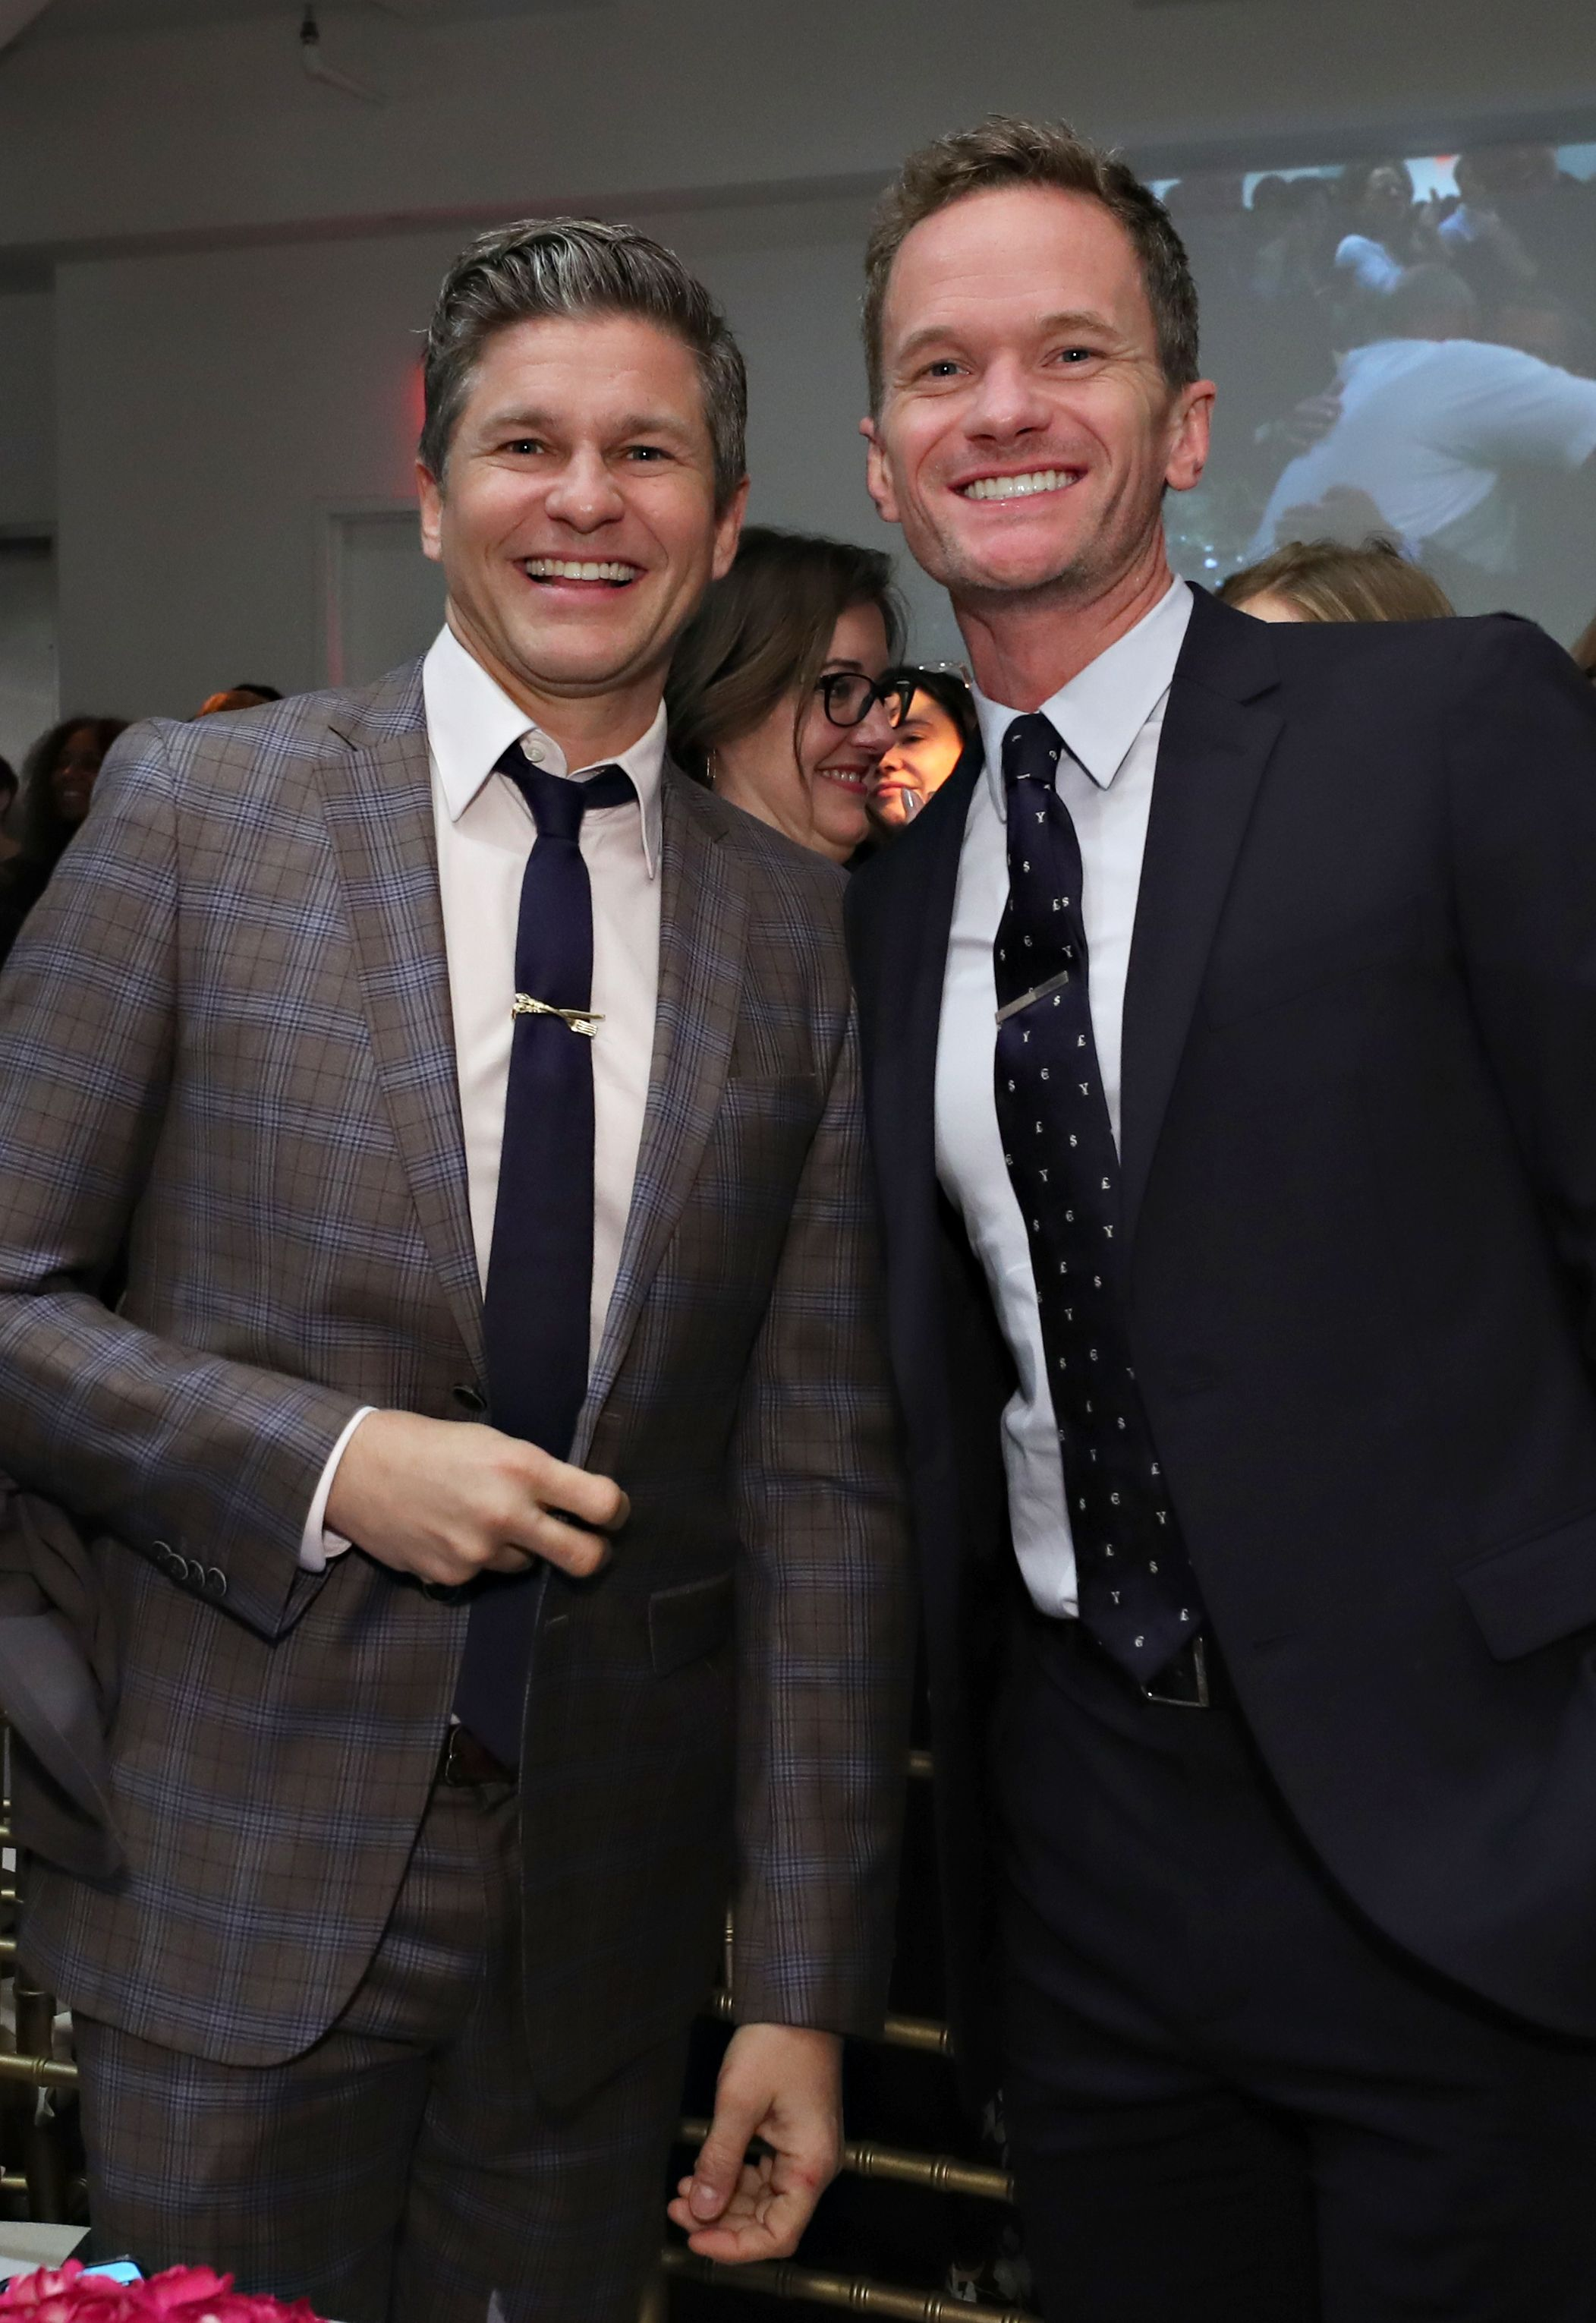 David Burtka and Neil Patrick Harris attend the 2019 Chefs For Kids' Cancer at Metropolitan Pavilion Metro West on March 12, 2019 in New York City. | Photo: Getty Images.